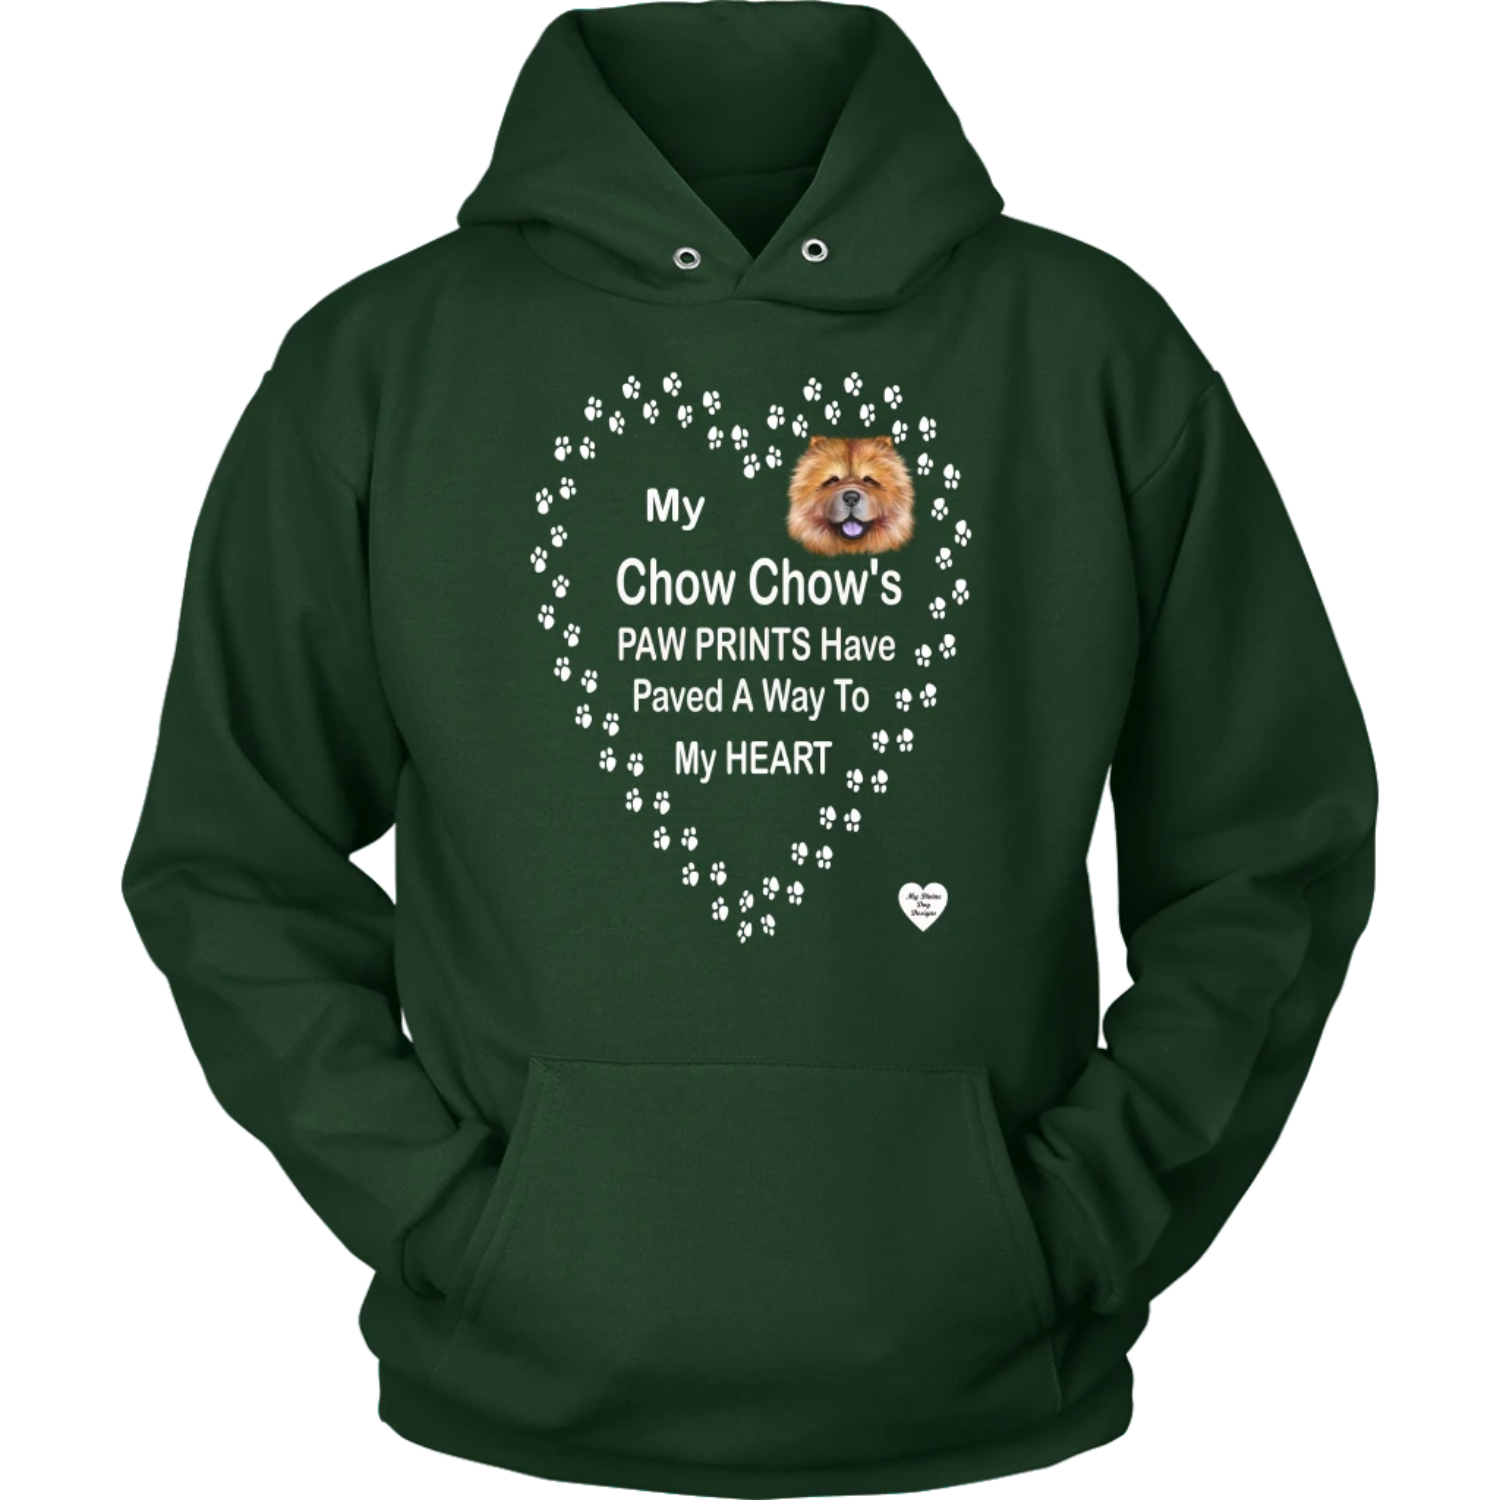 My Chow Chow's Paw Prints - Tan - Hoodie Dark Green